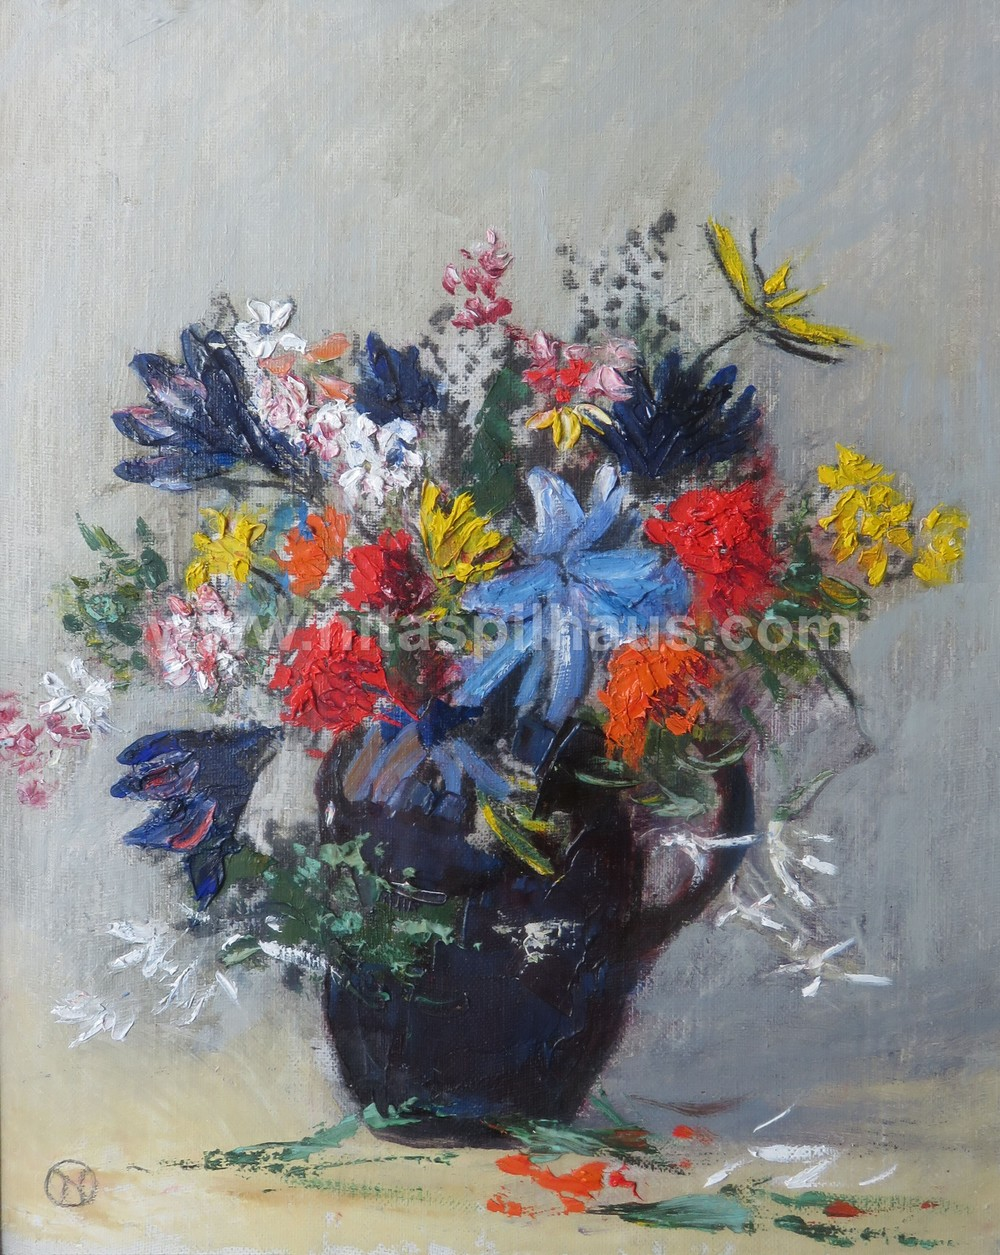 Flowers c 1955, Oil on Canvas, 29 x 24.2 cms Collector 53